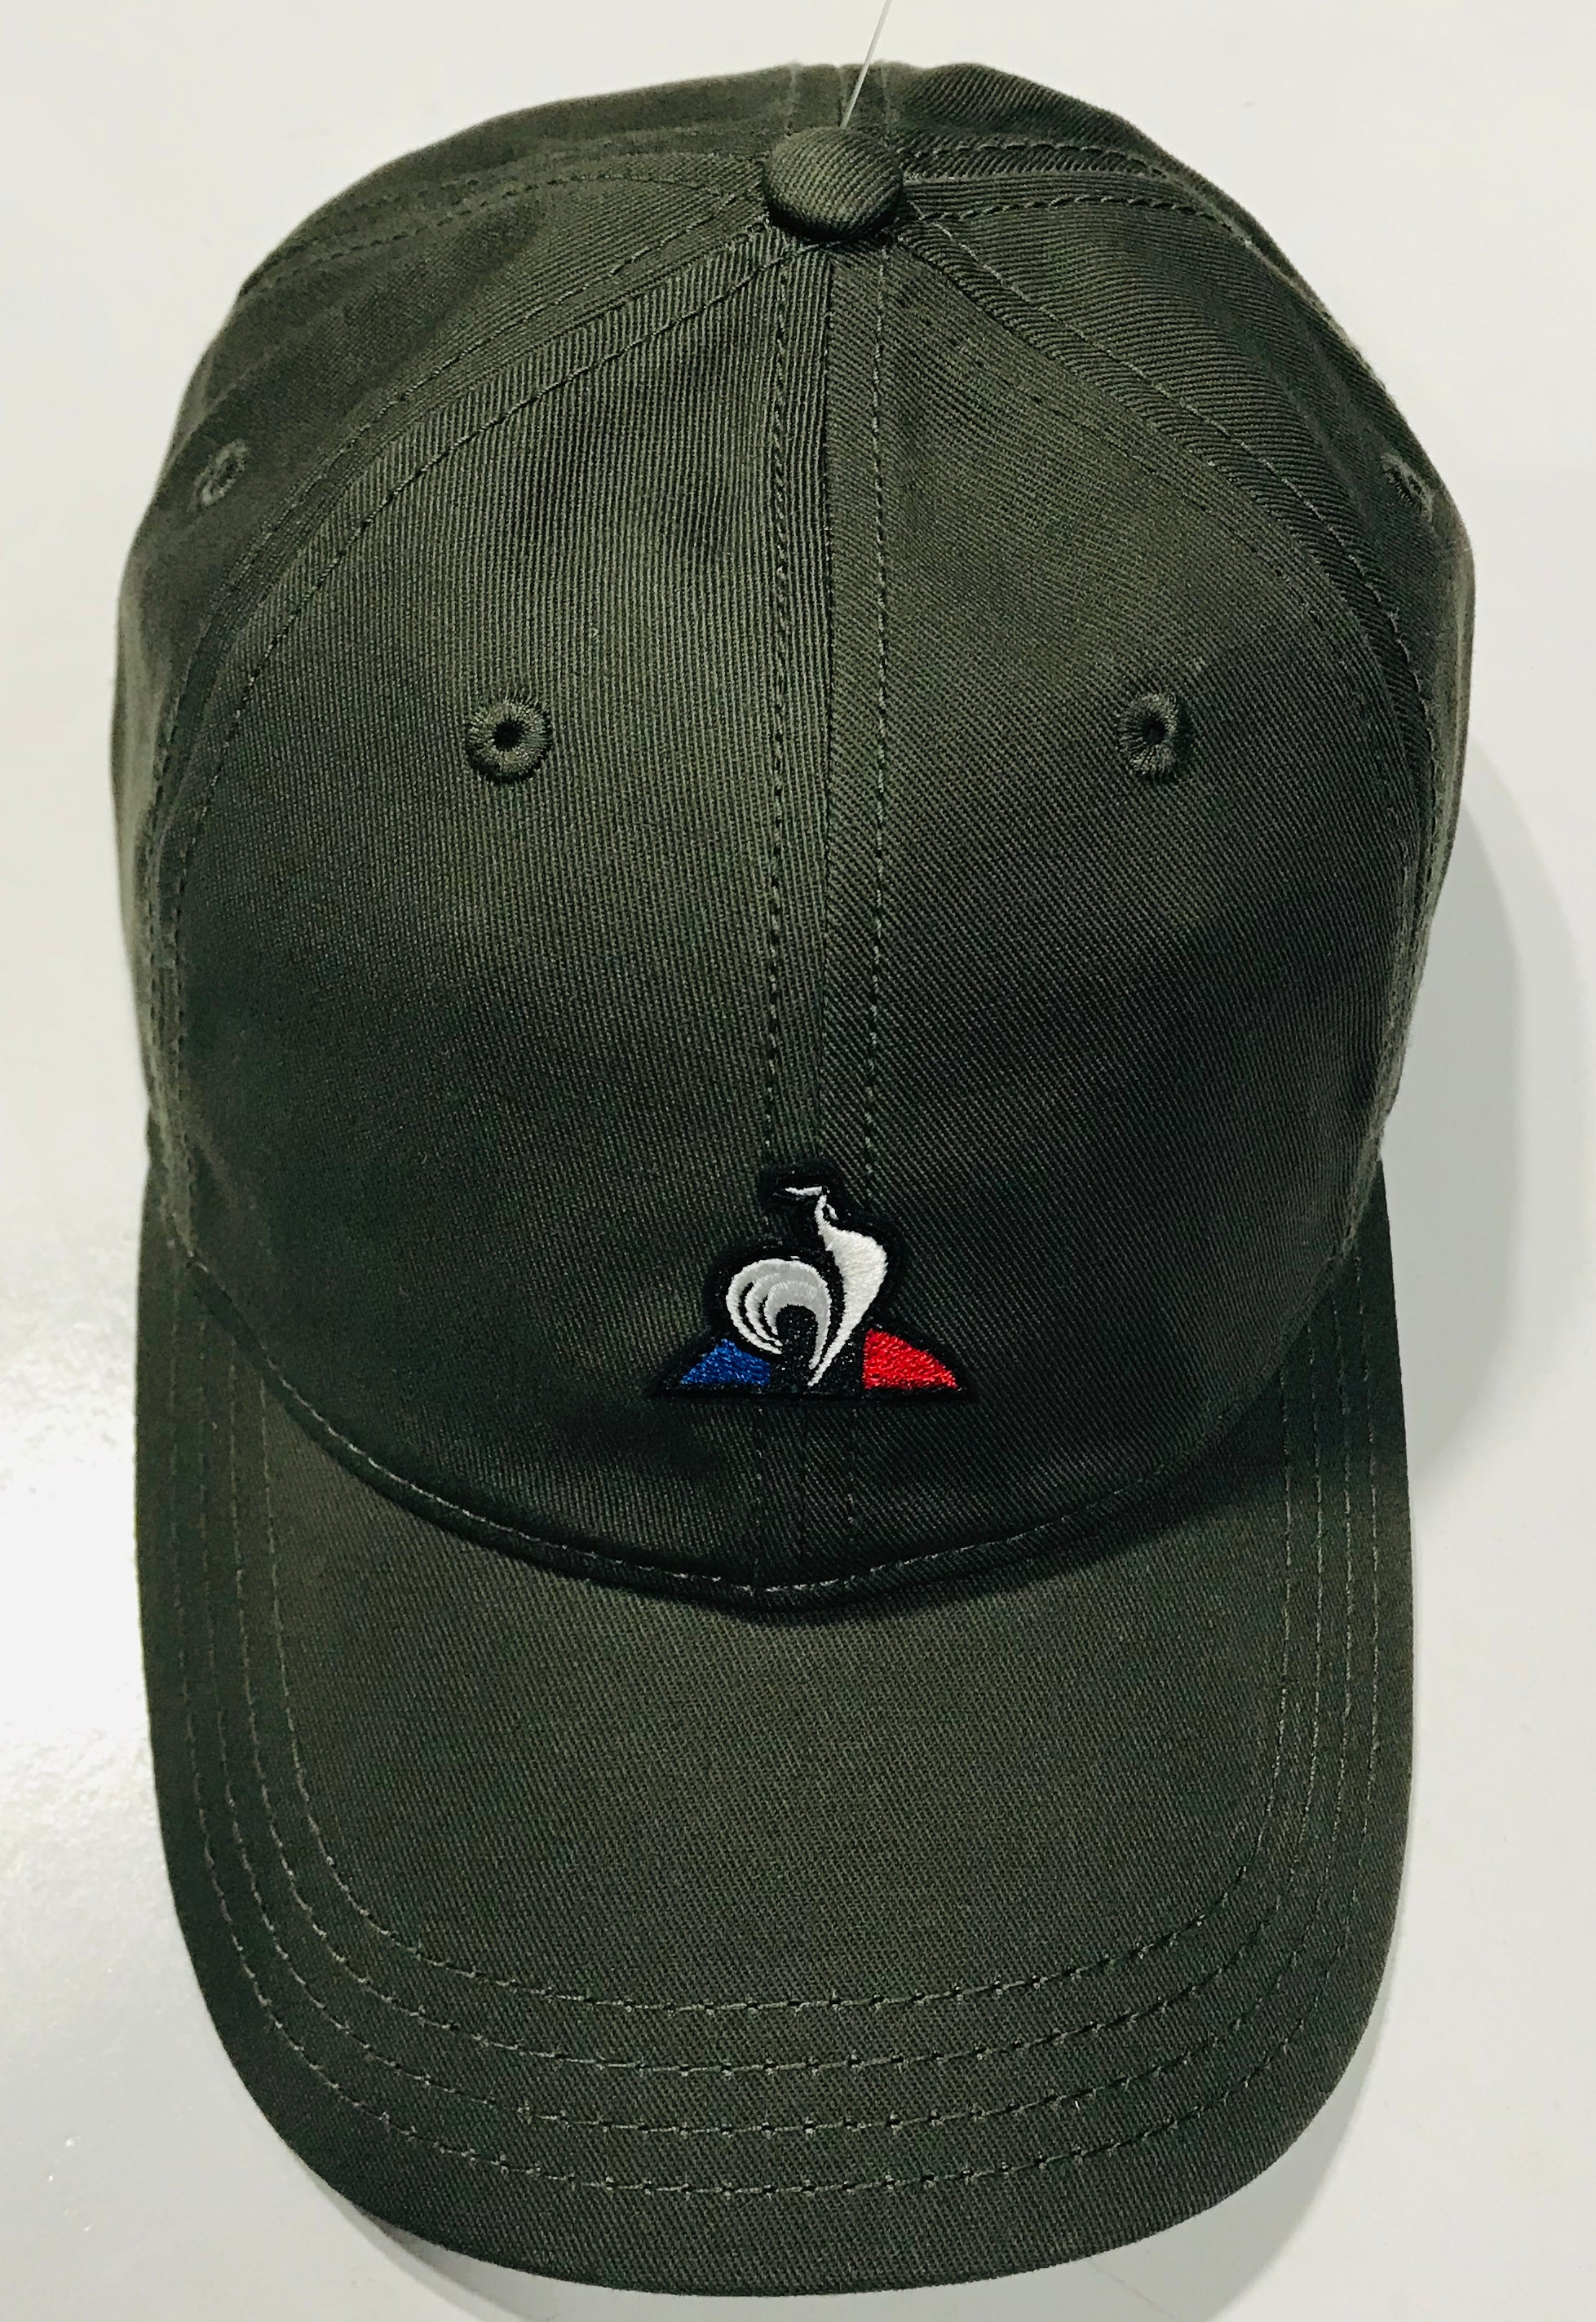 dbaed0dd6 le coq sportif Army Cap 2820702 Famous Rock Shop Newcastle 2300 NSW  Australia